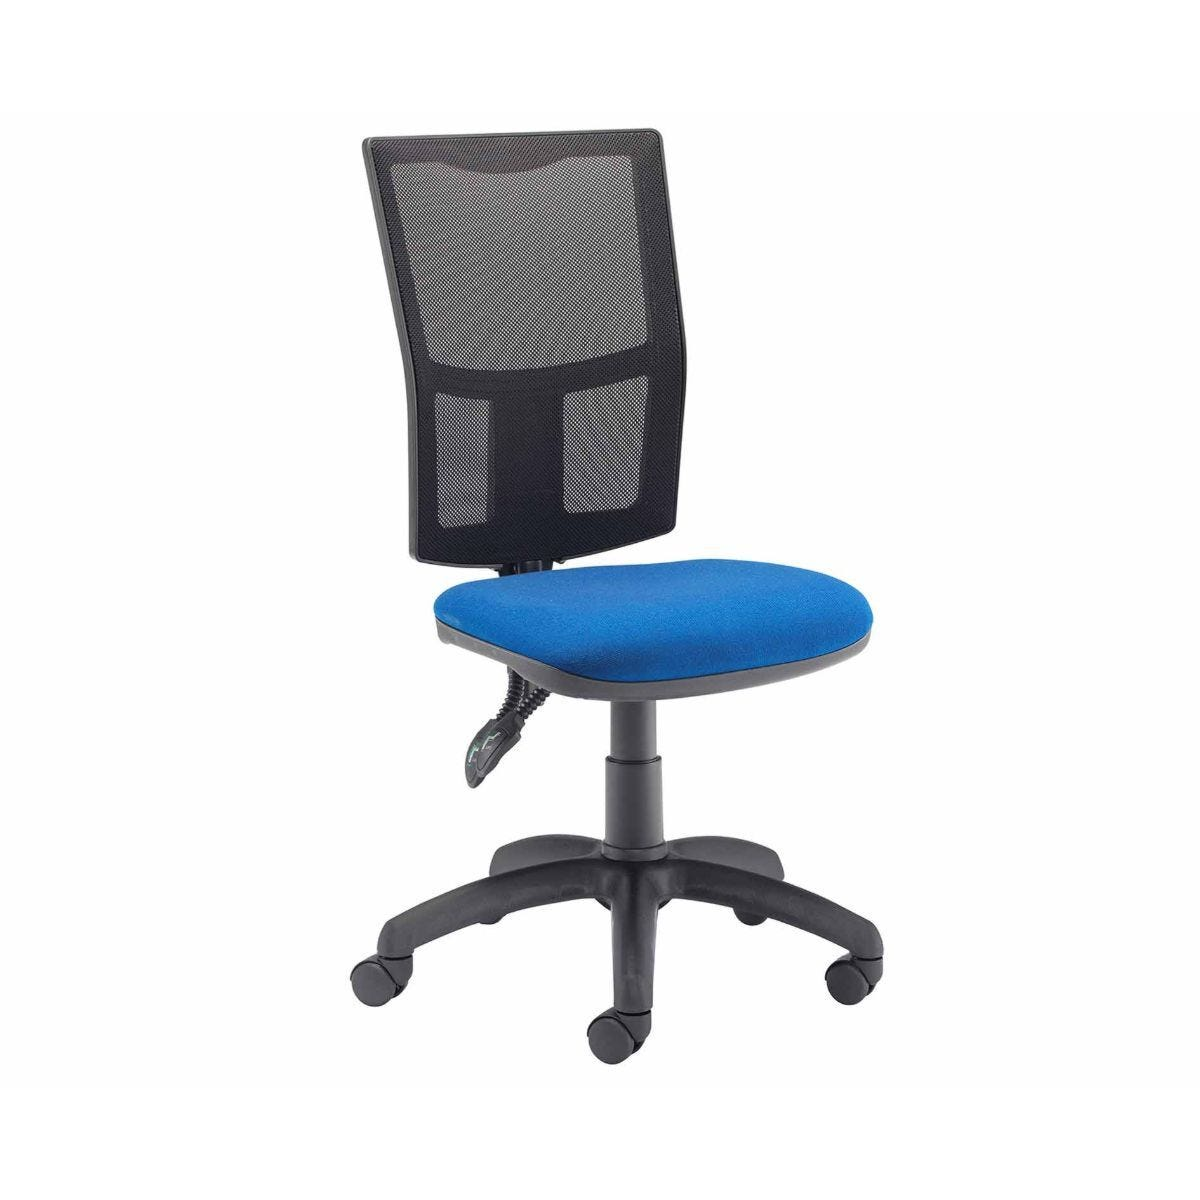 TC Office Calypso High Back Twin Lever Operator Chair with Mesh Back Royal Blue